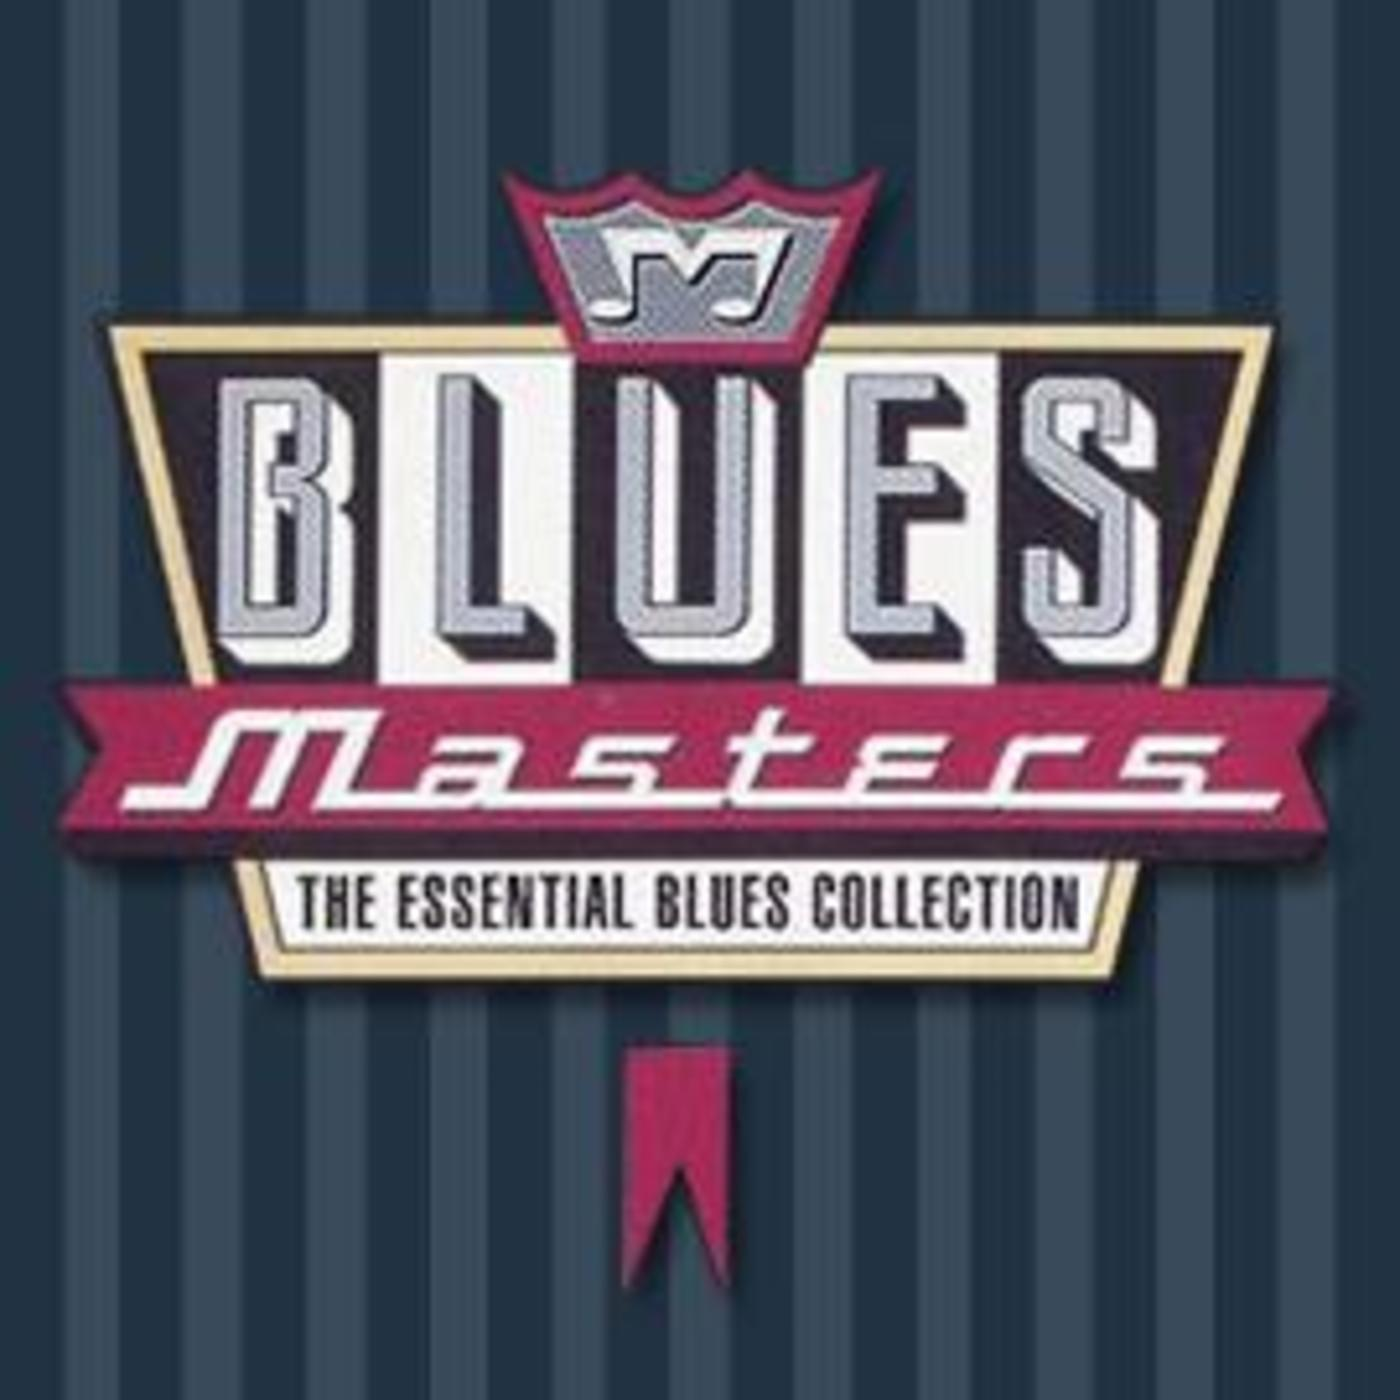 Blues Masters - Slim Harpo, Little Walter, Billy Boy Arnold, Howlin' Wolf, The Paul Butterfield Blues Band, Buddy Guy, Junior Wells, Sonny Boy Williams II, Jimmy Reed, James Cotton